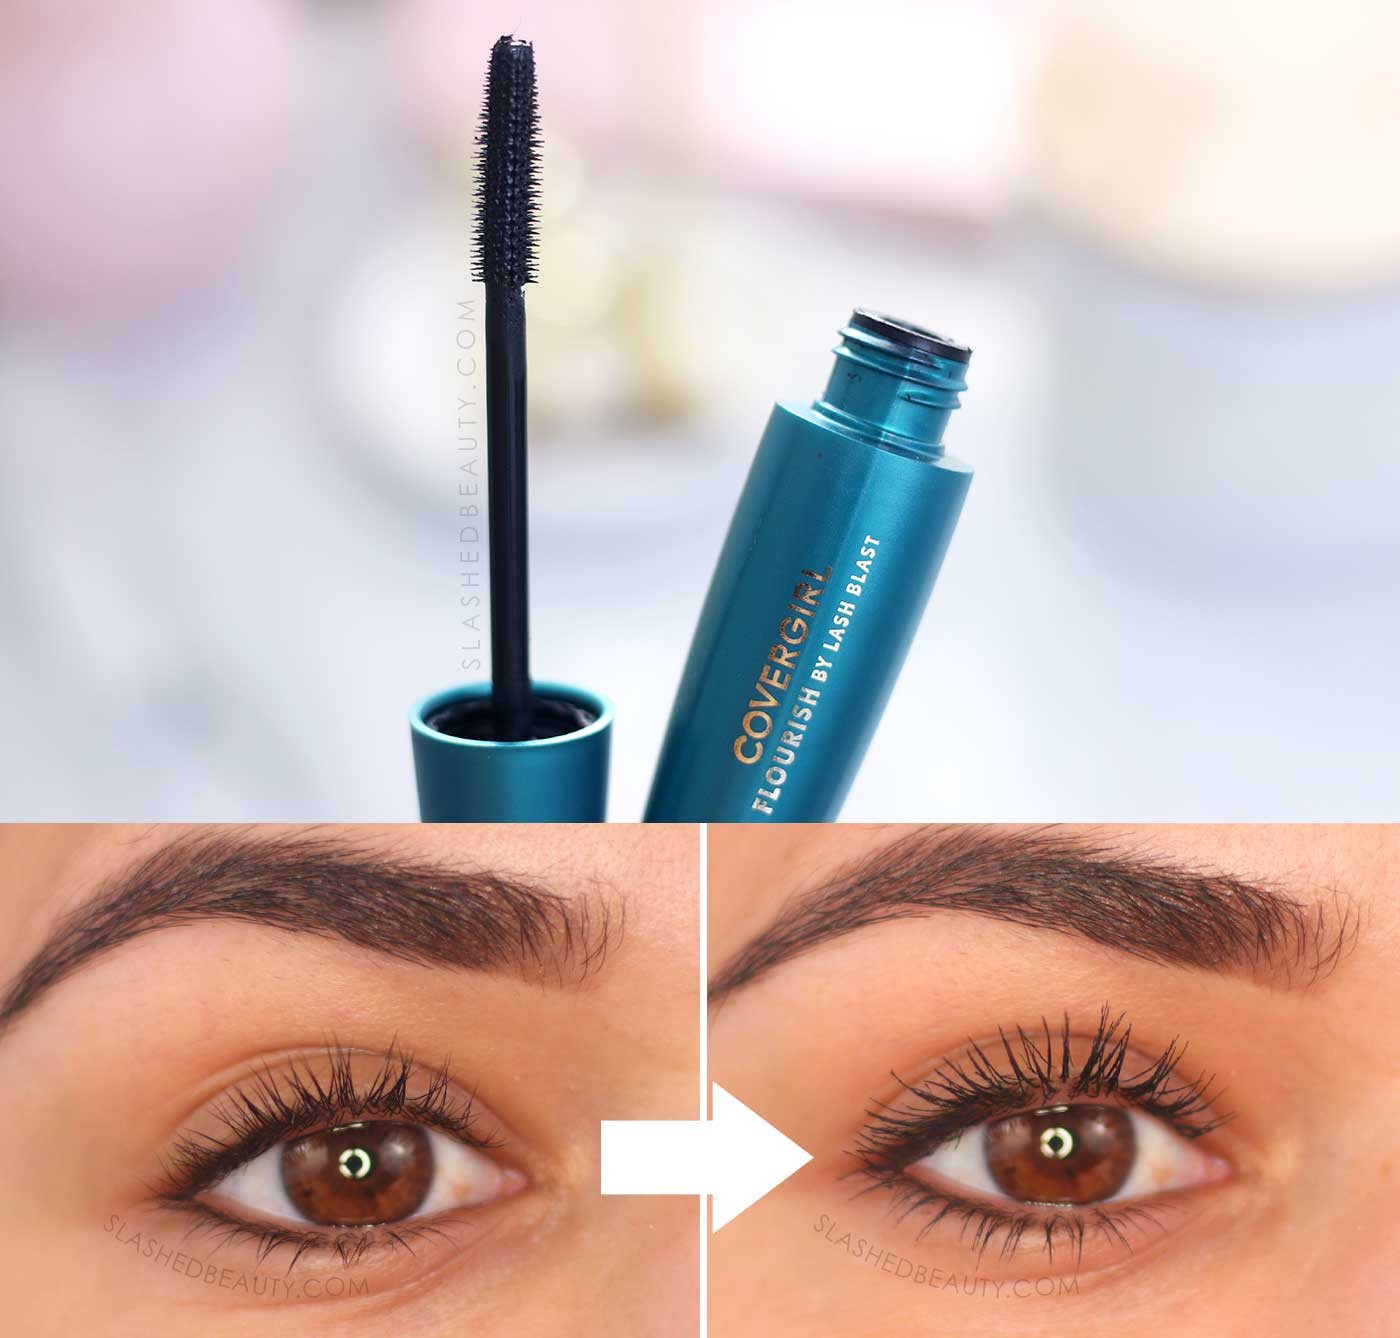 Covergirl Flourish by Lash Blast Before & After Review | 5 Best Drugstore Mascaras in 2020 | Slashed Beauty